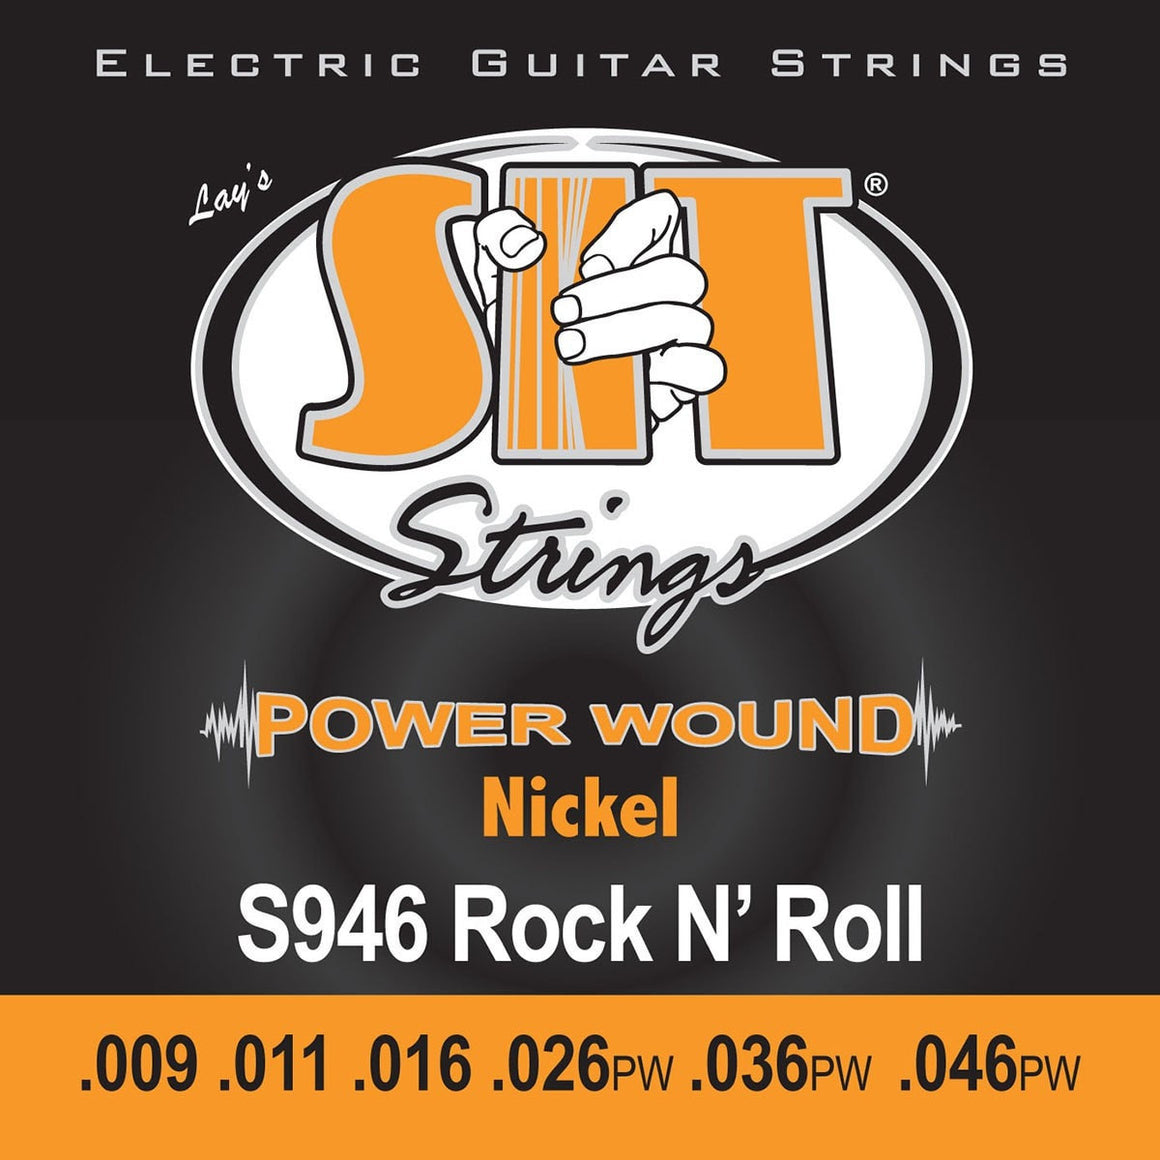 SIT Strings Electric Guitar Strings SIT Power Wound Nickel Rock N Roll S946 Electric Guitar Strings